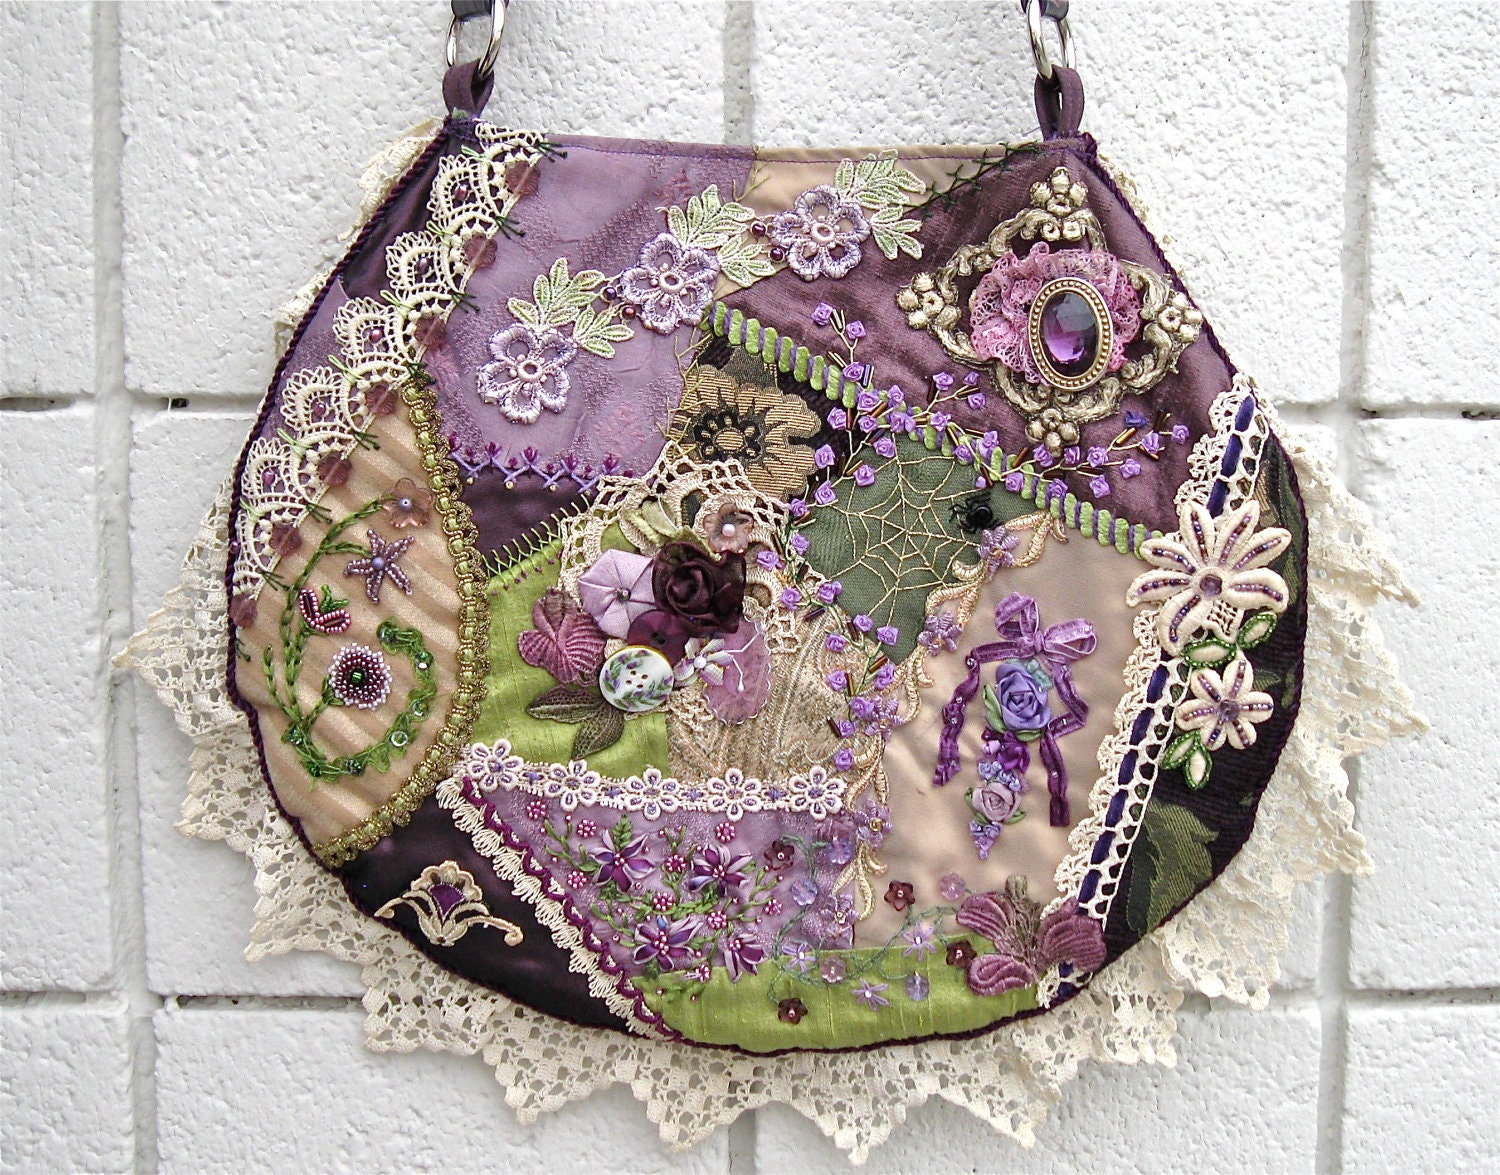 Purse Crazy Quilt Handbag Embroidery Beads With Vintage Lace